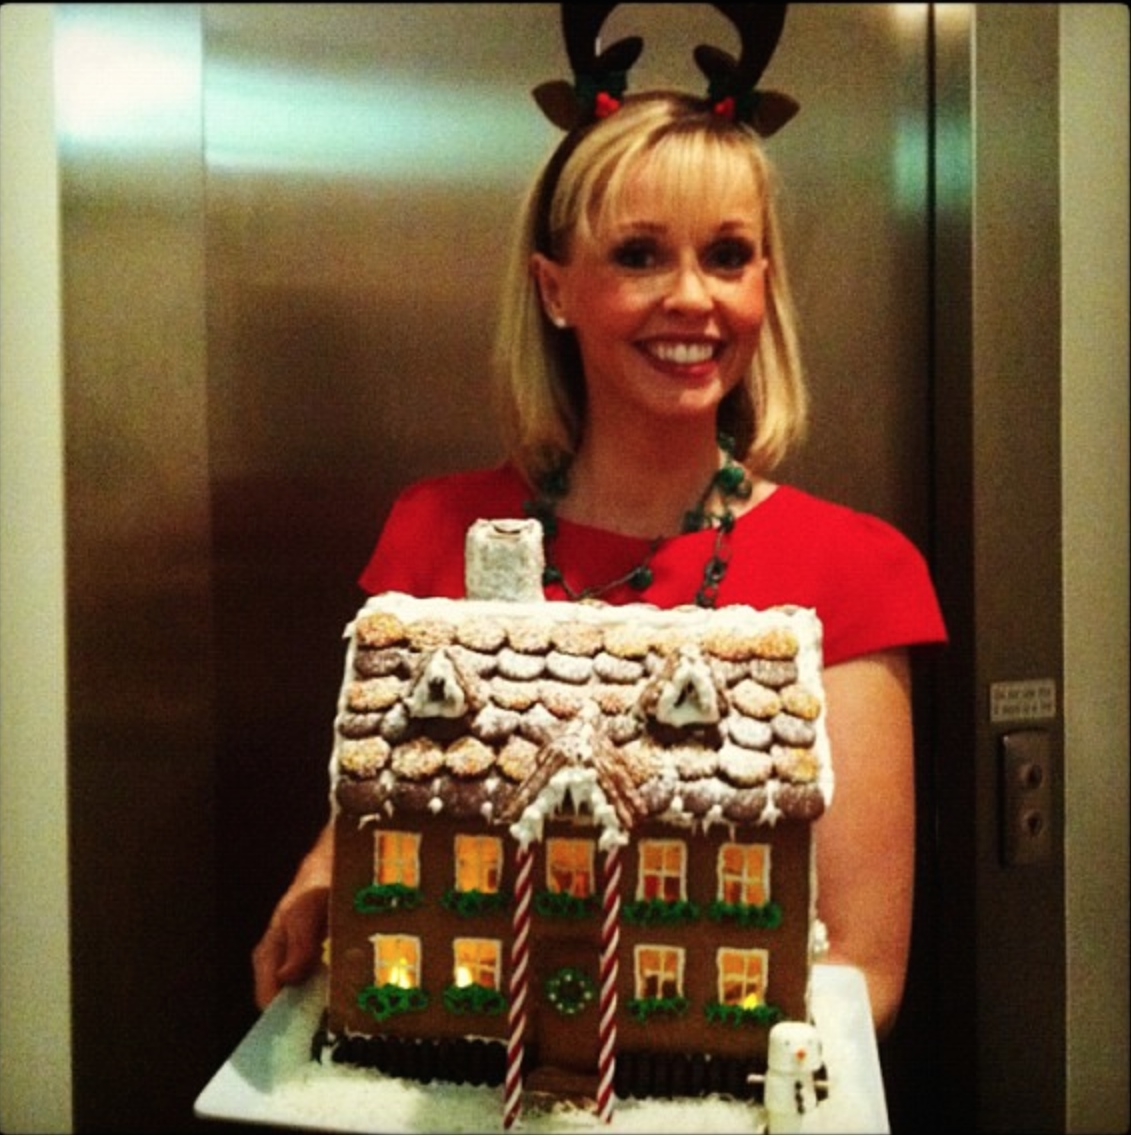 The best gingerbread house in the history of gingerbread houses free template to make the best diy gingerbread house ever really clear instructions make this solutioingenieria Choice Image